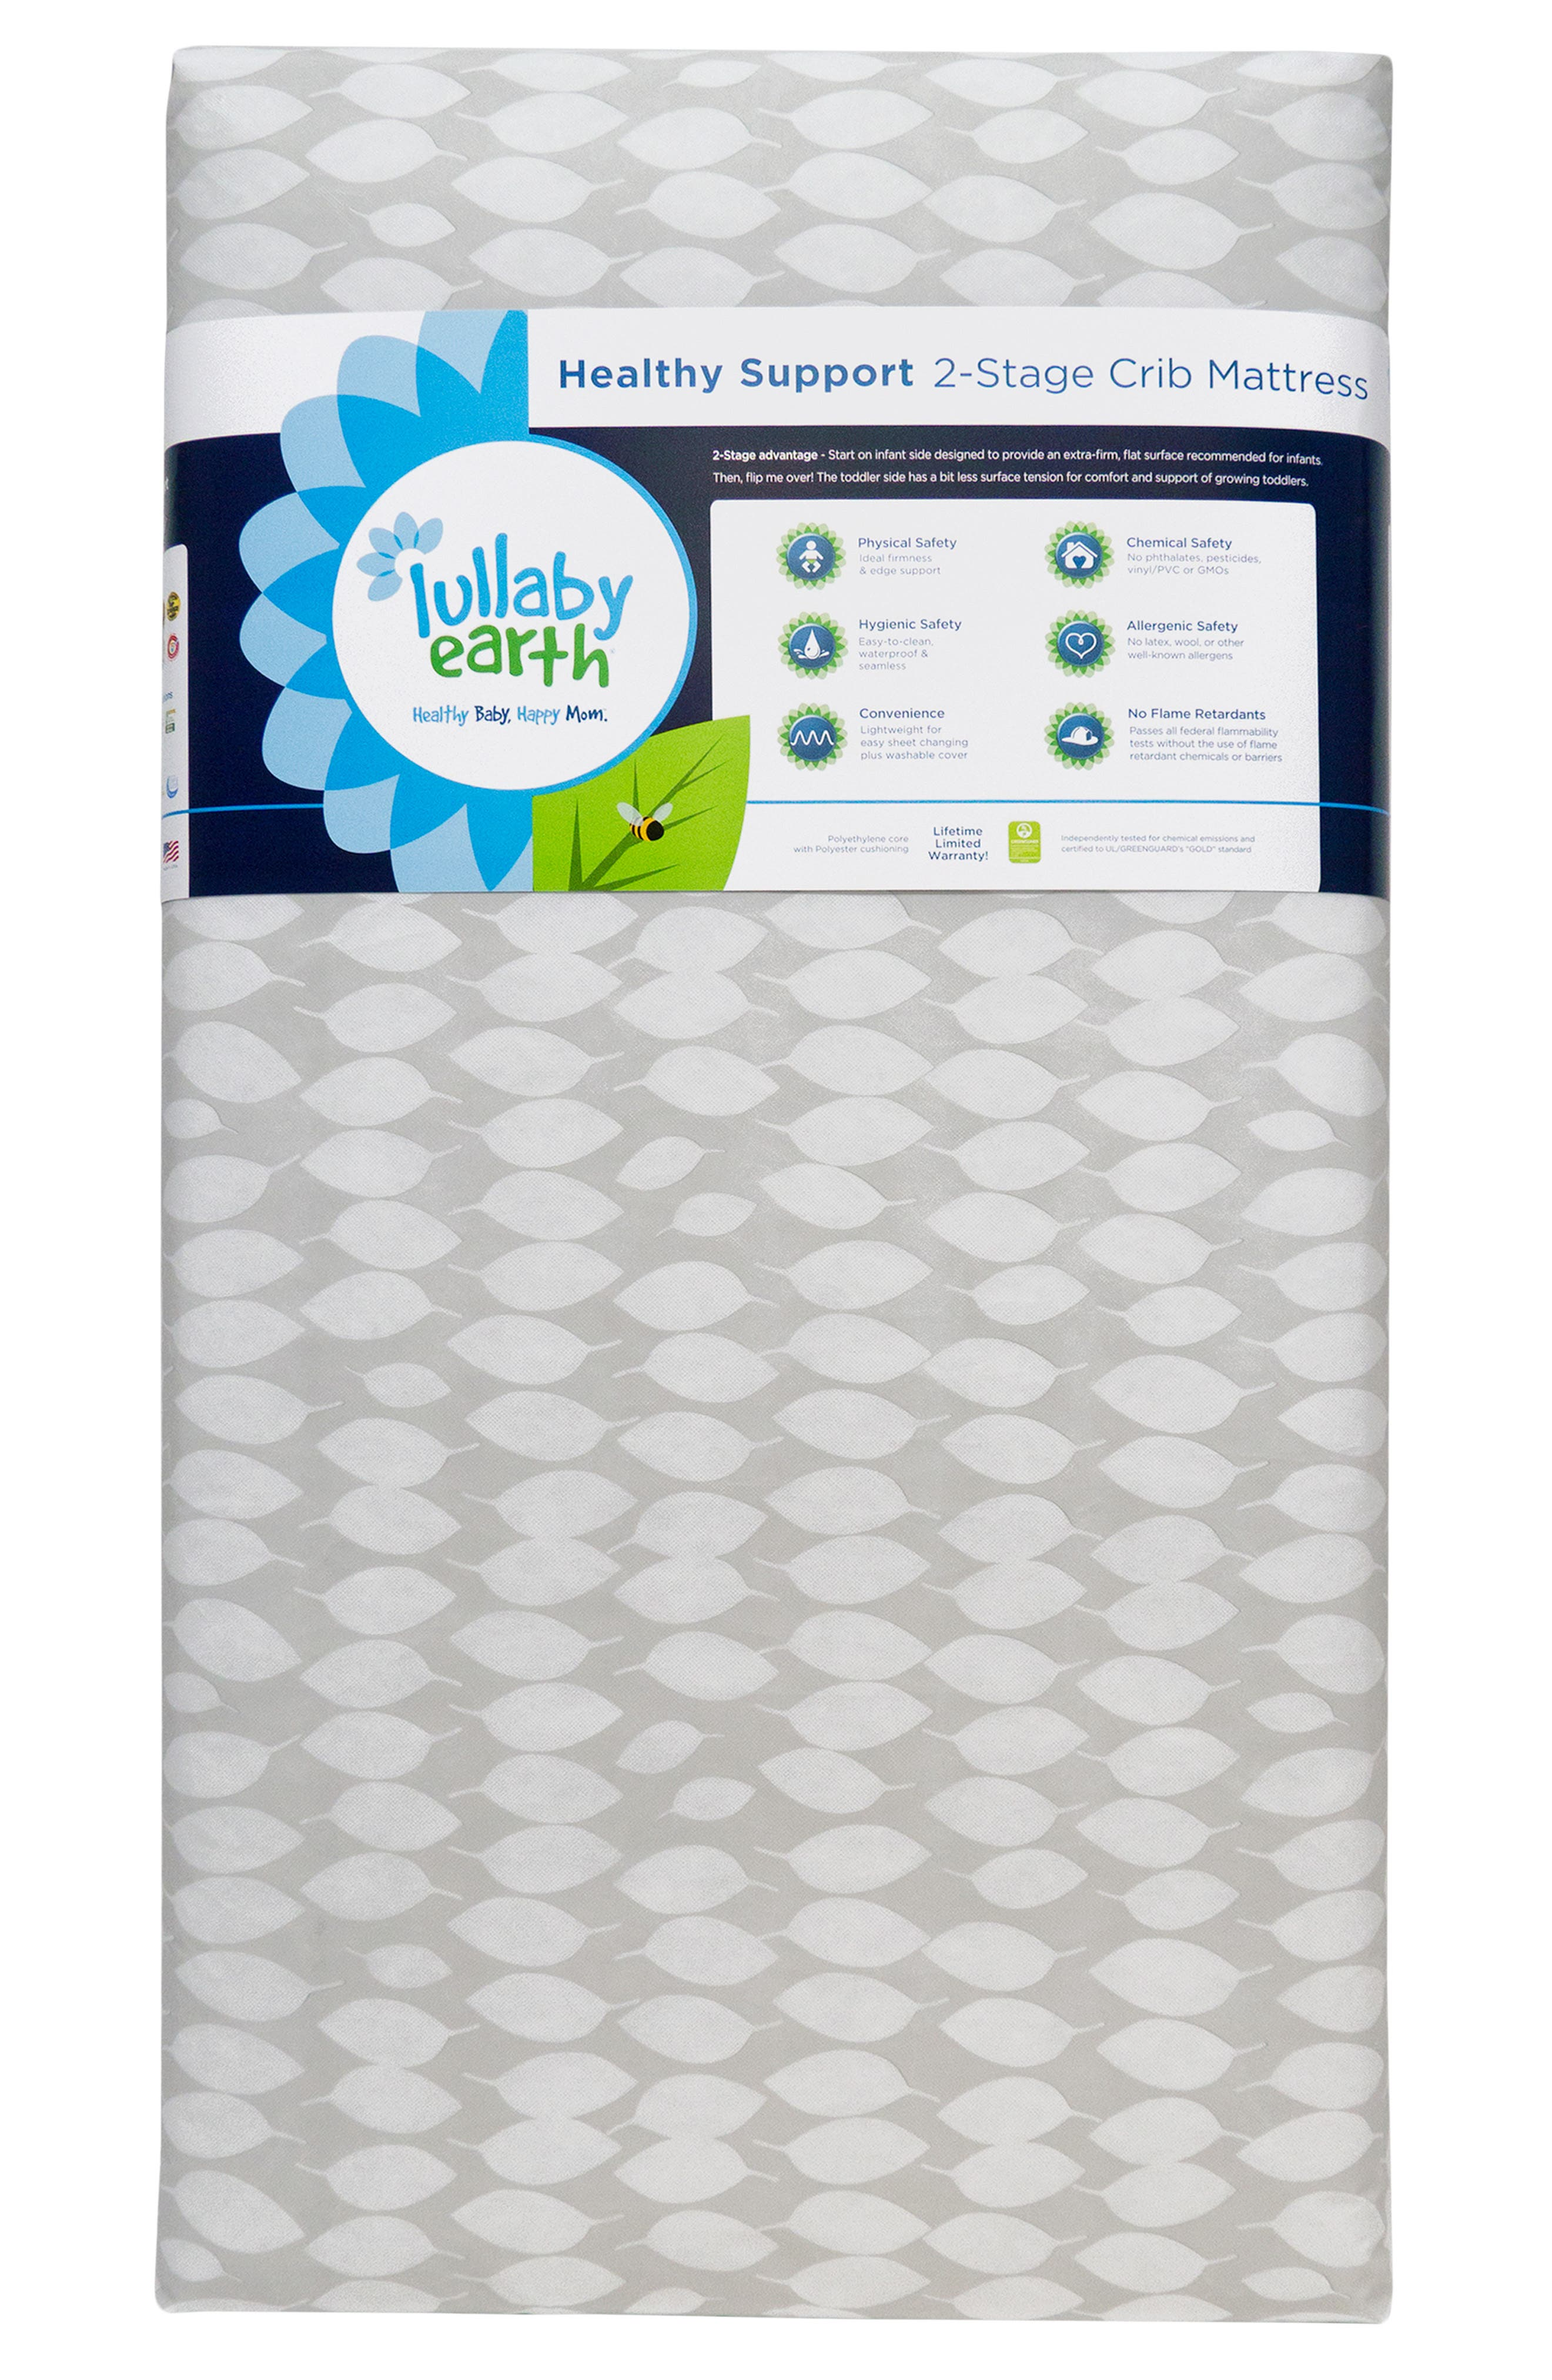 Healthy Support 2-Stage Crib Mattress,                         Main,                         color, Grey/White